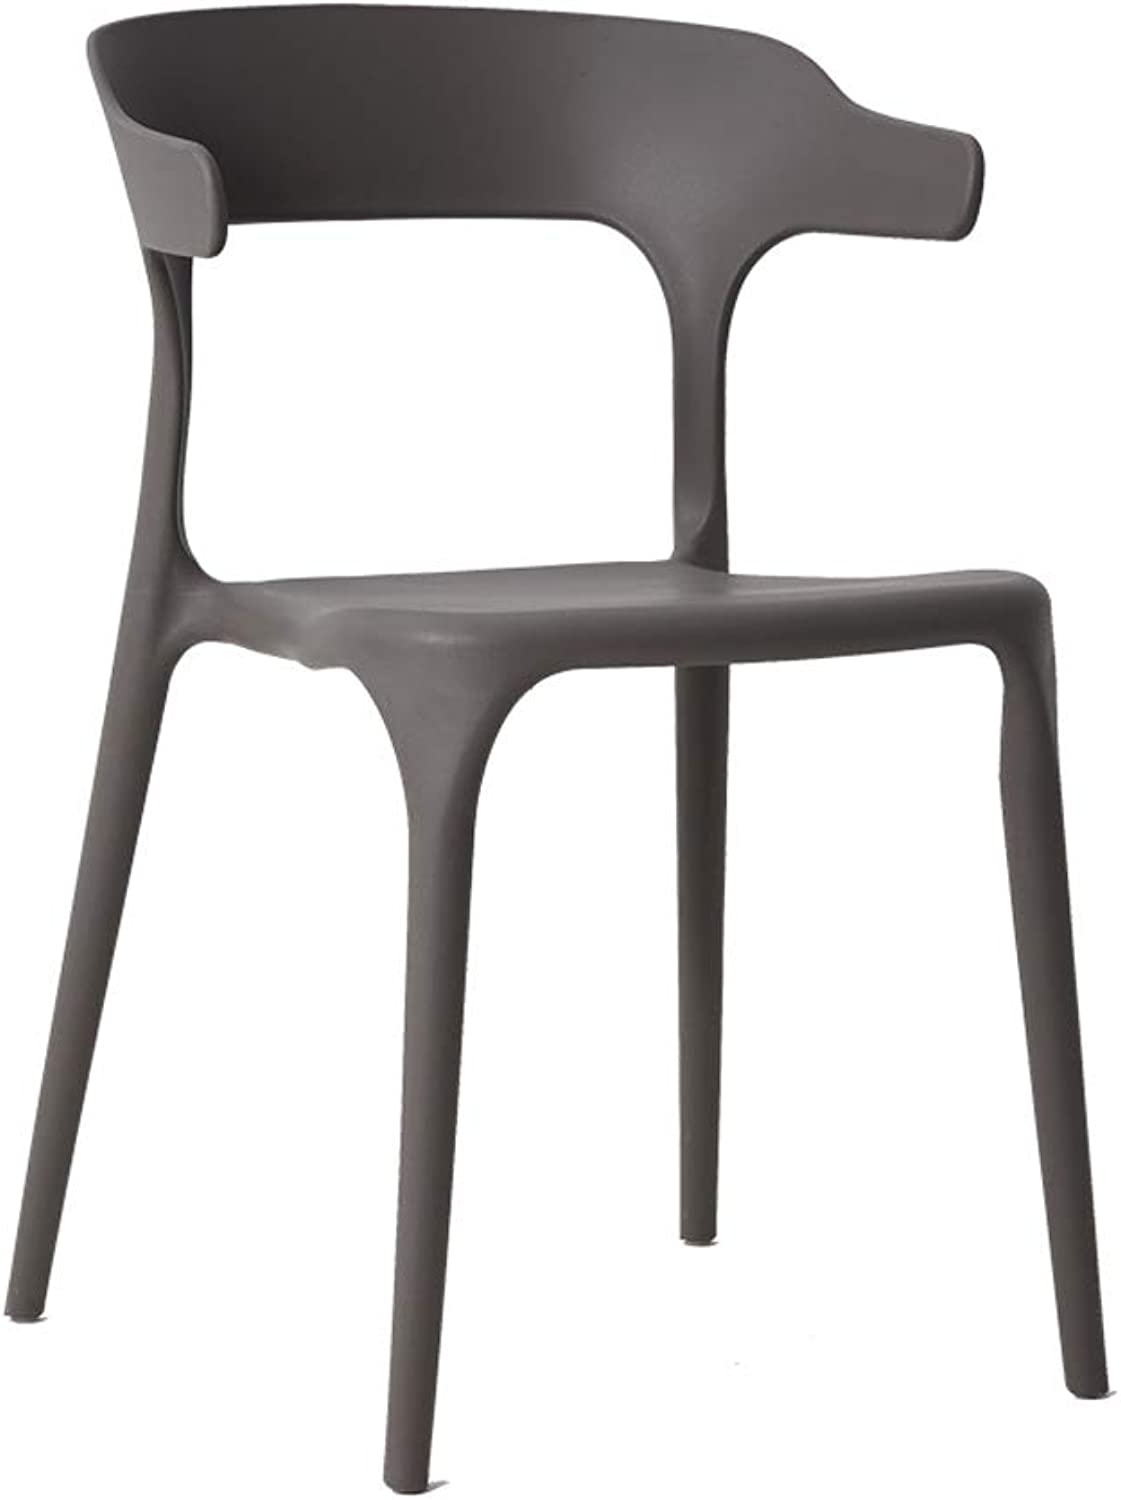 LBYMYB Home Chair Comfortable Adult Chair Nordic Fashion Restaurant Seat 50x46x75cm Chair